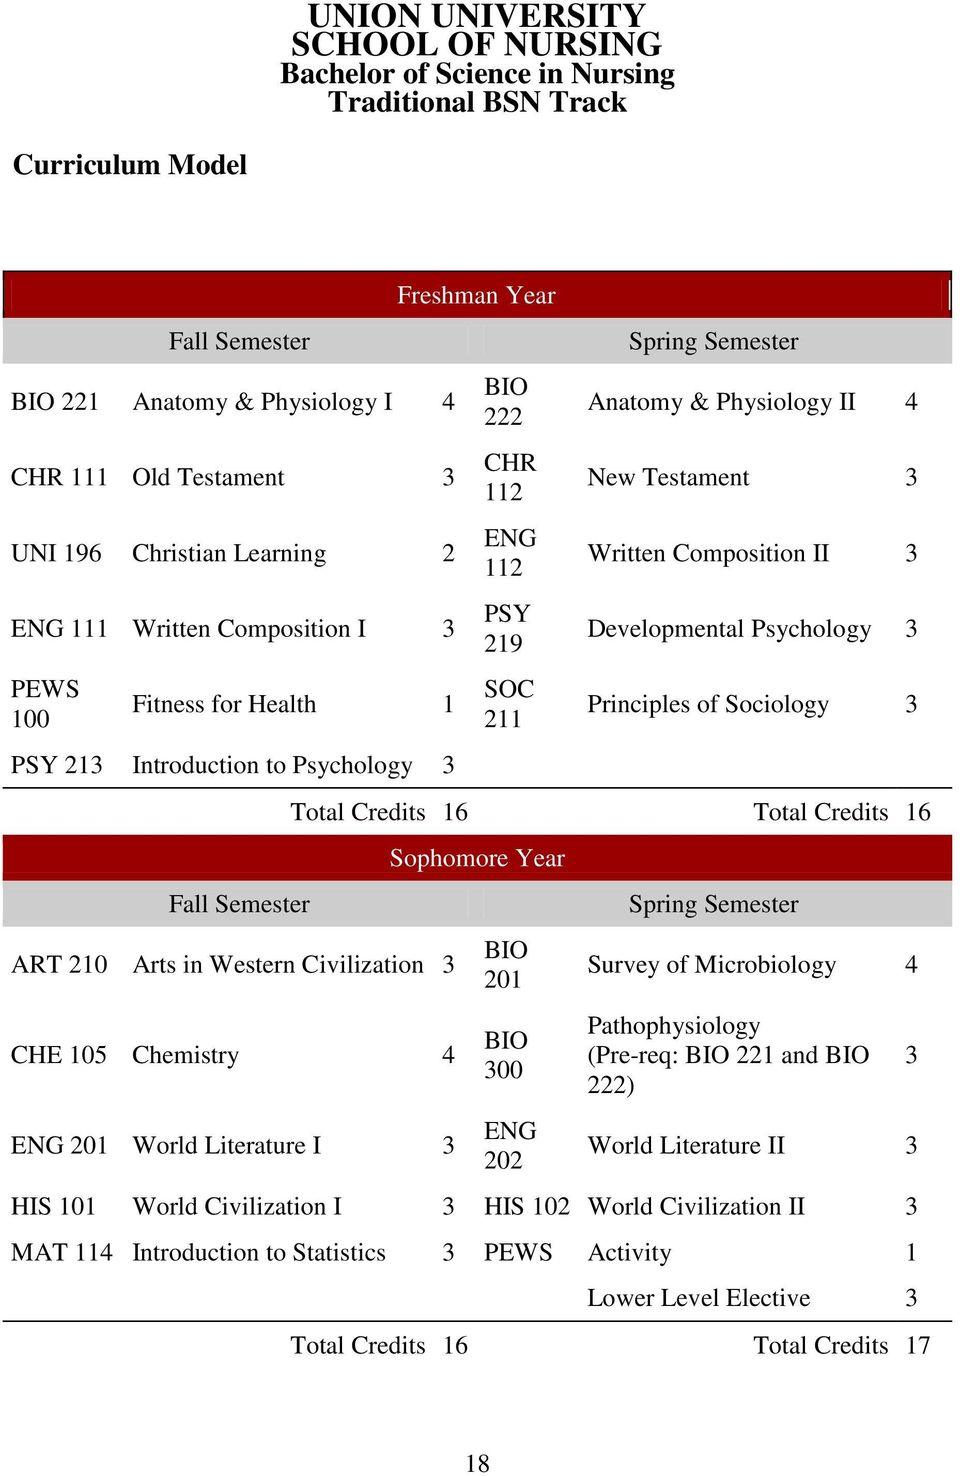 Literature I 3 Freshman Year BIO 222 CHR 112 ENG 112 PSY 219 SOC 211 Spring Semester Anatomy & Physiology II 4 New Testament 3 Written Composition II 3 Developmental Psychology 3 Principles of